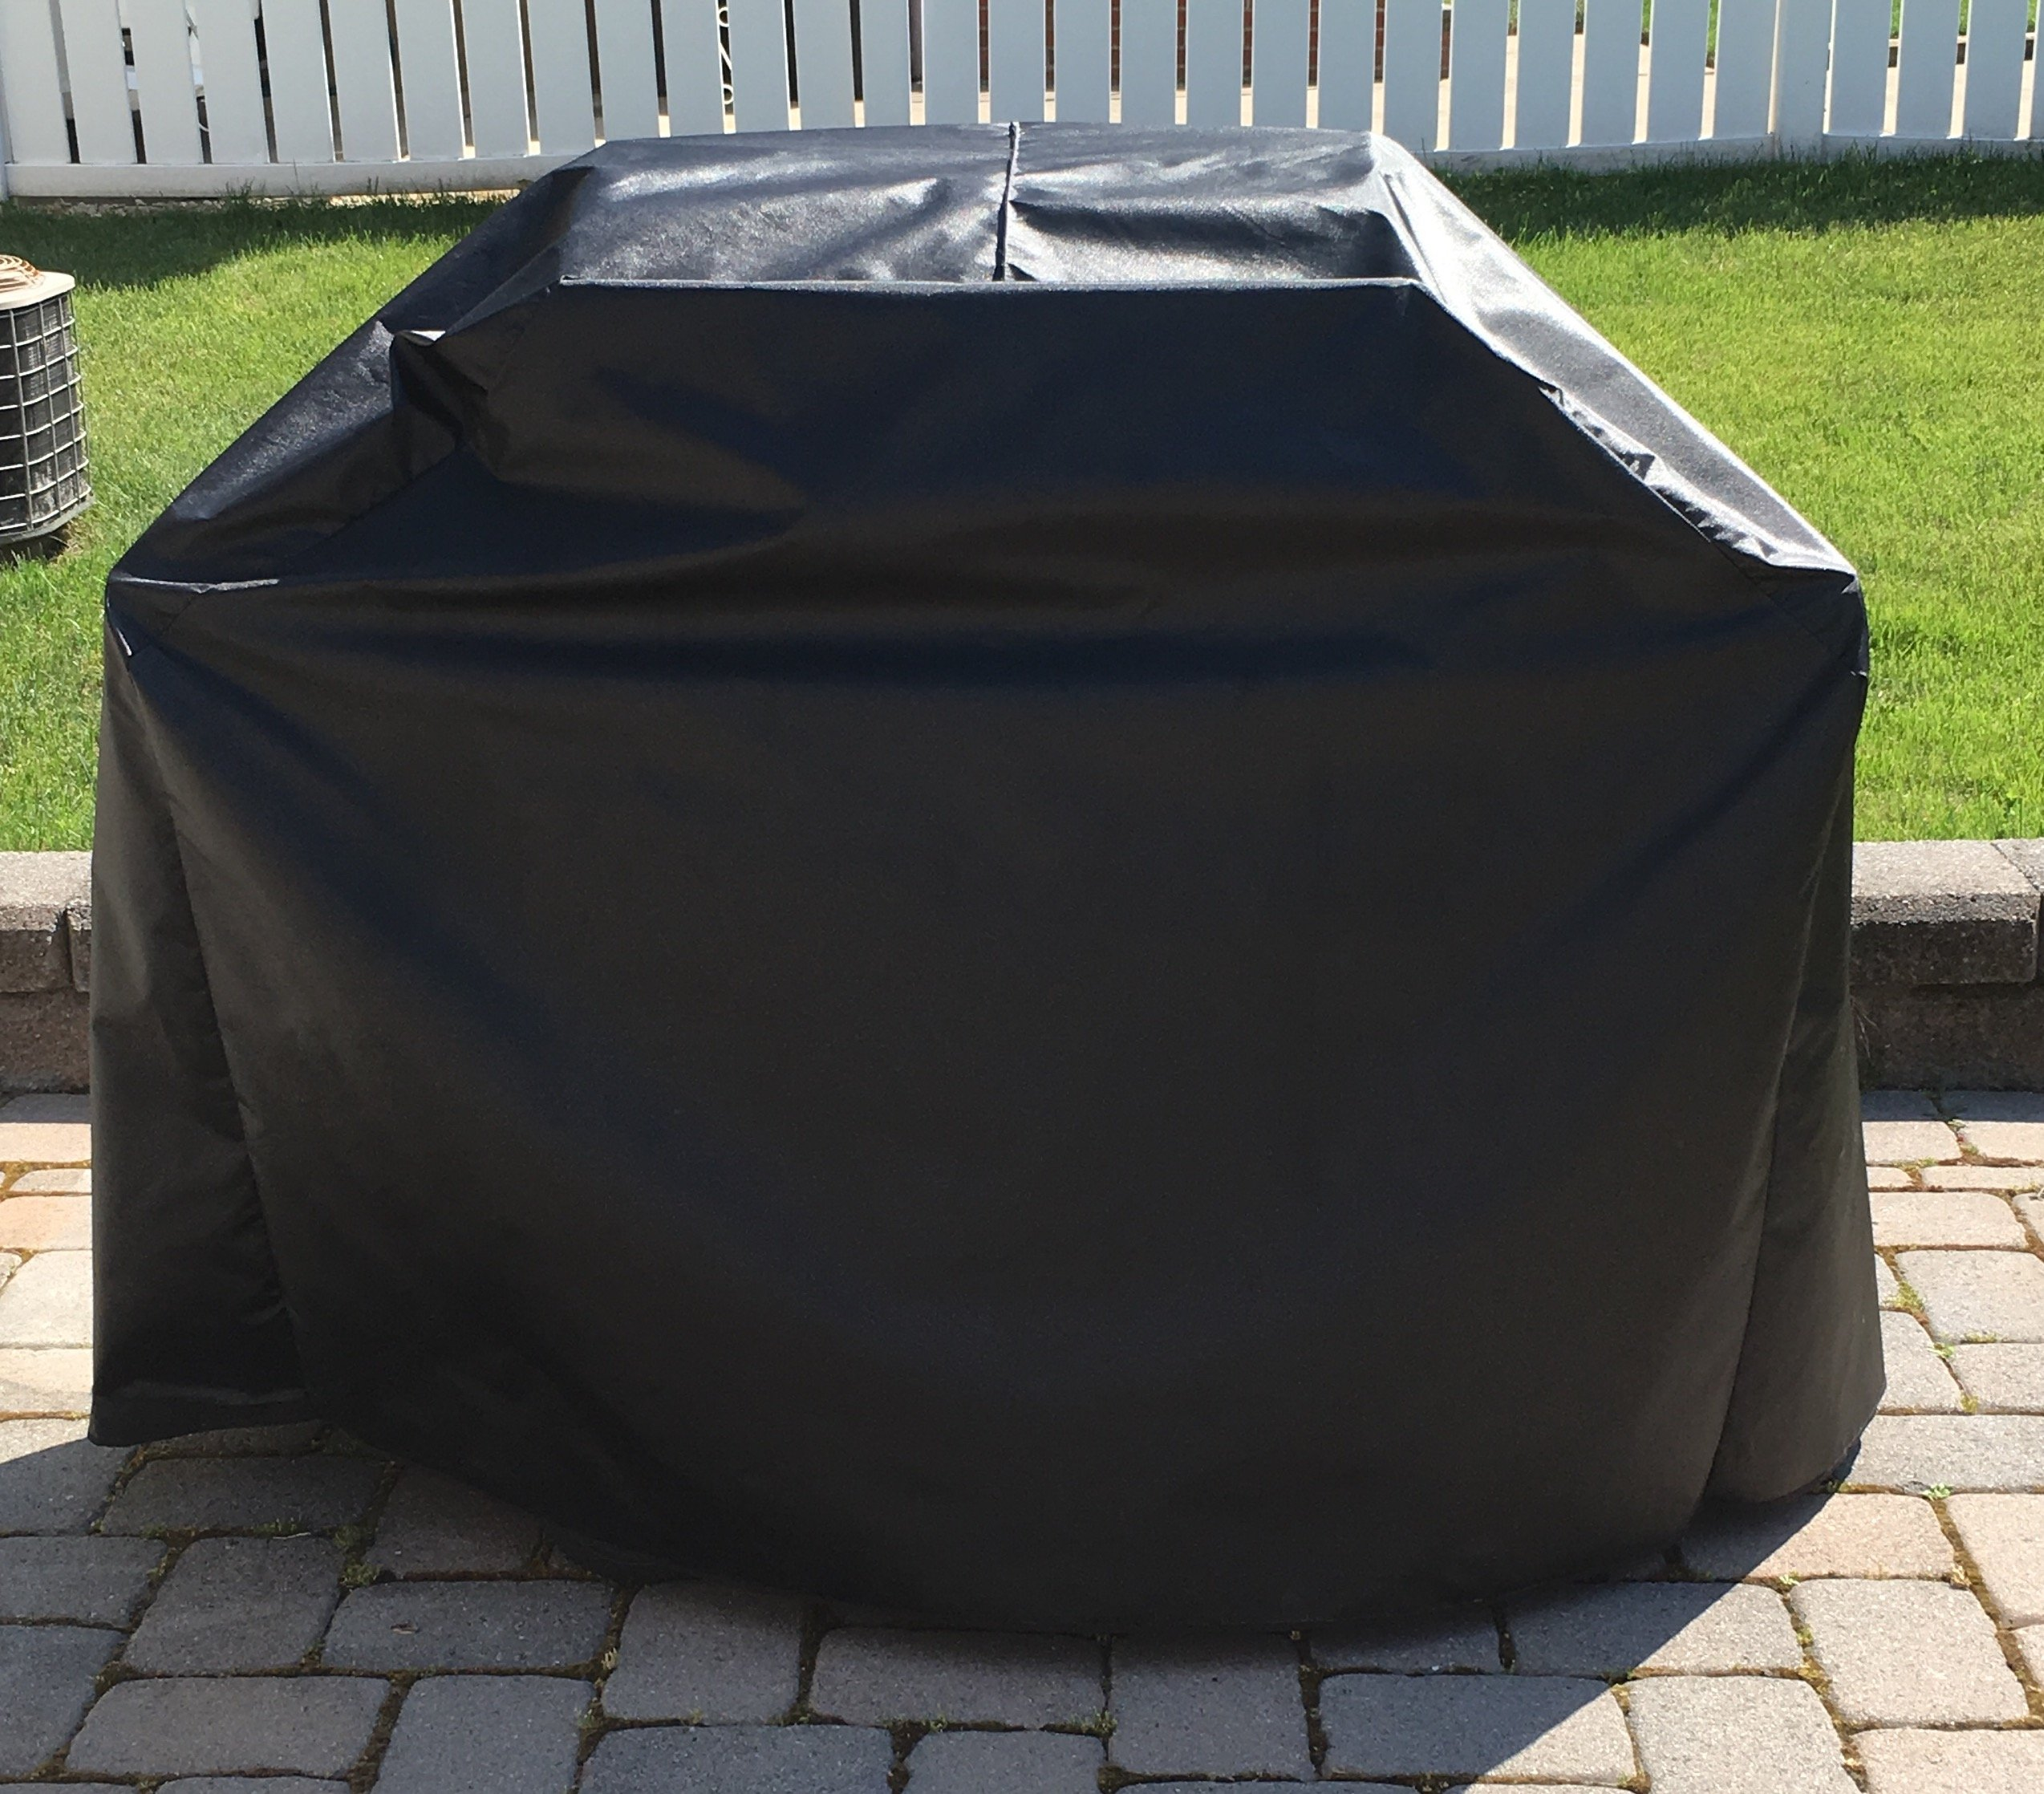 Comp Bind Technology Grill Cover for Weber Genesis II E-210 Gas Grill Custom Fitting Outdoor Black Waterproof Cover - 47''W x 29''D x 45''H